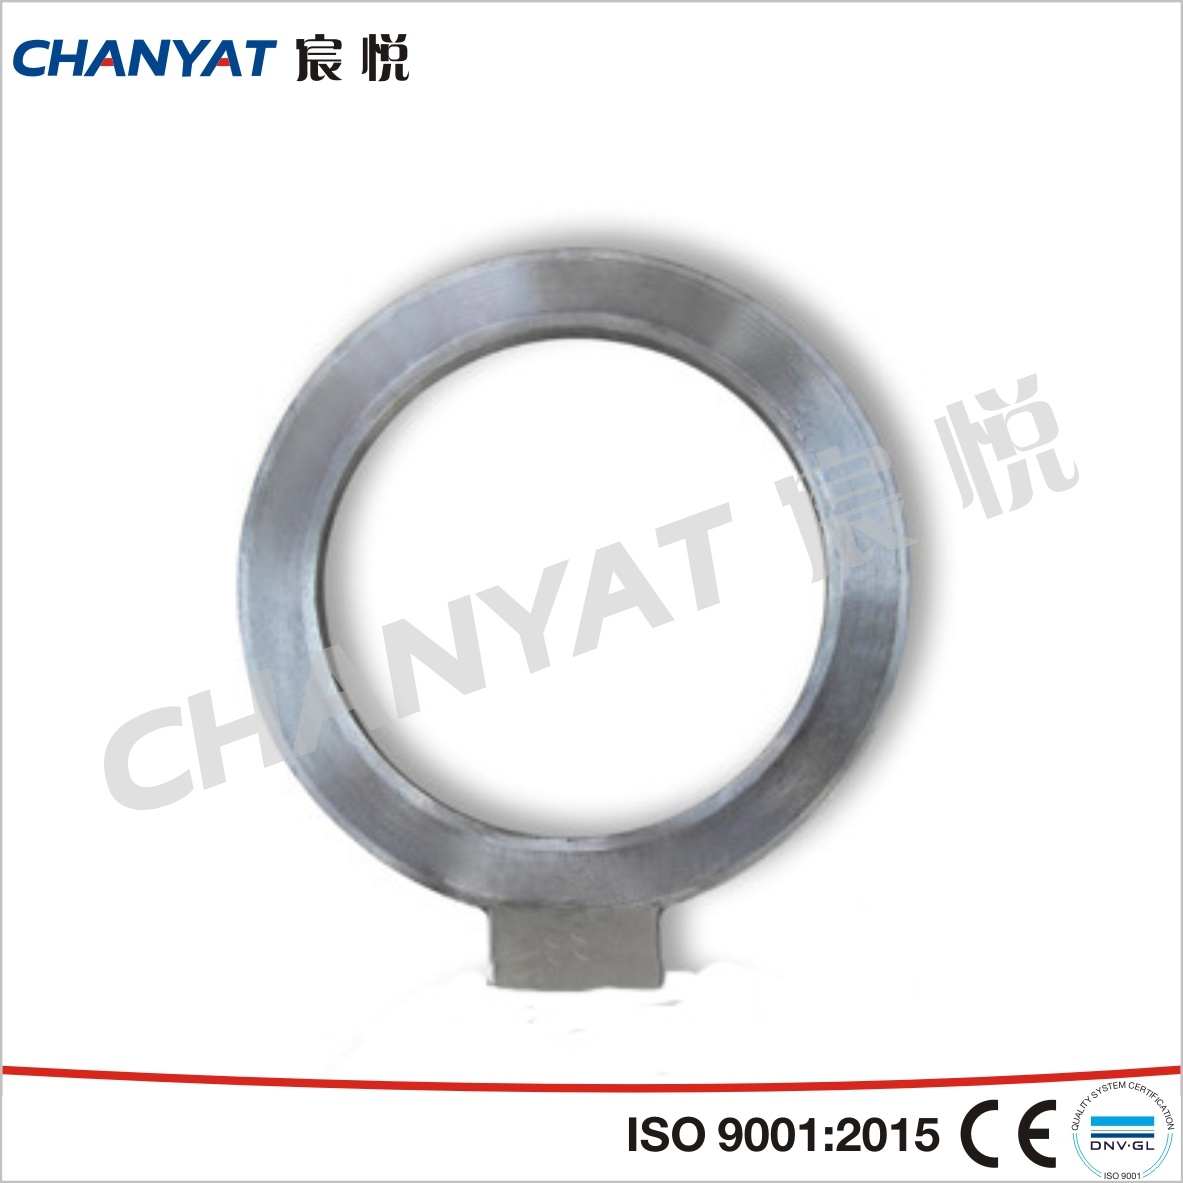 Stainless Steel Blind Flange (F316Ti, F317L, F309H)